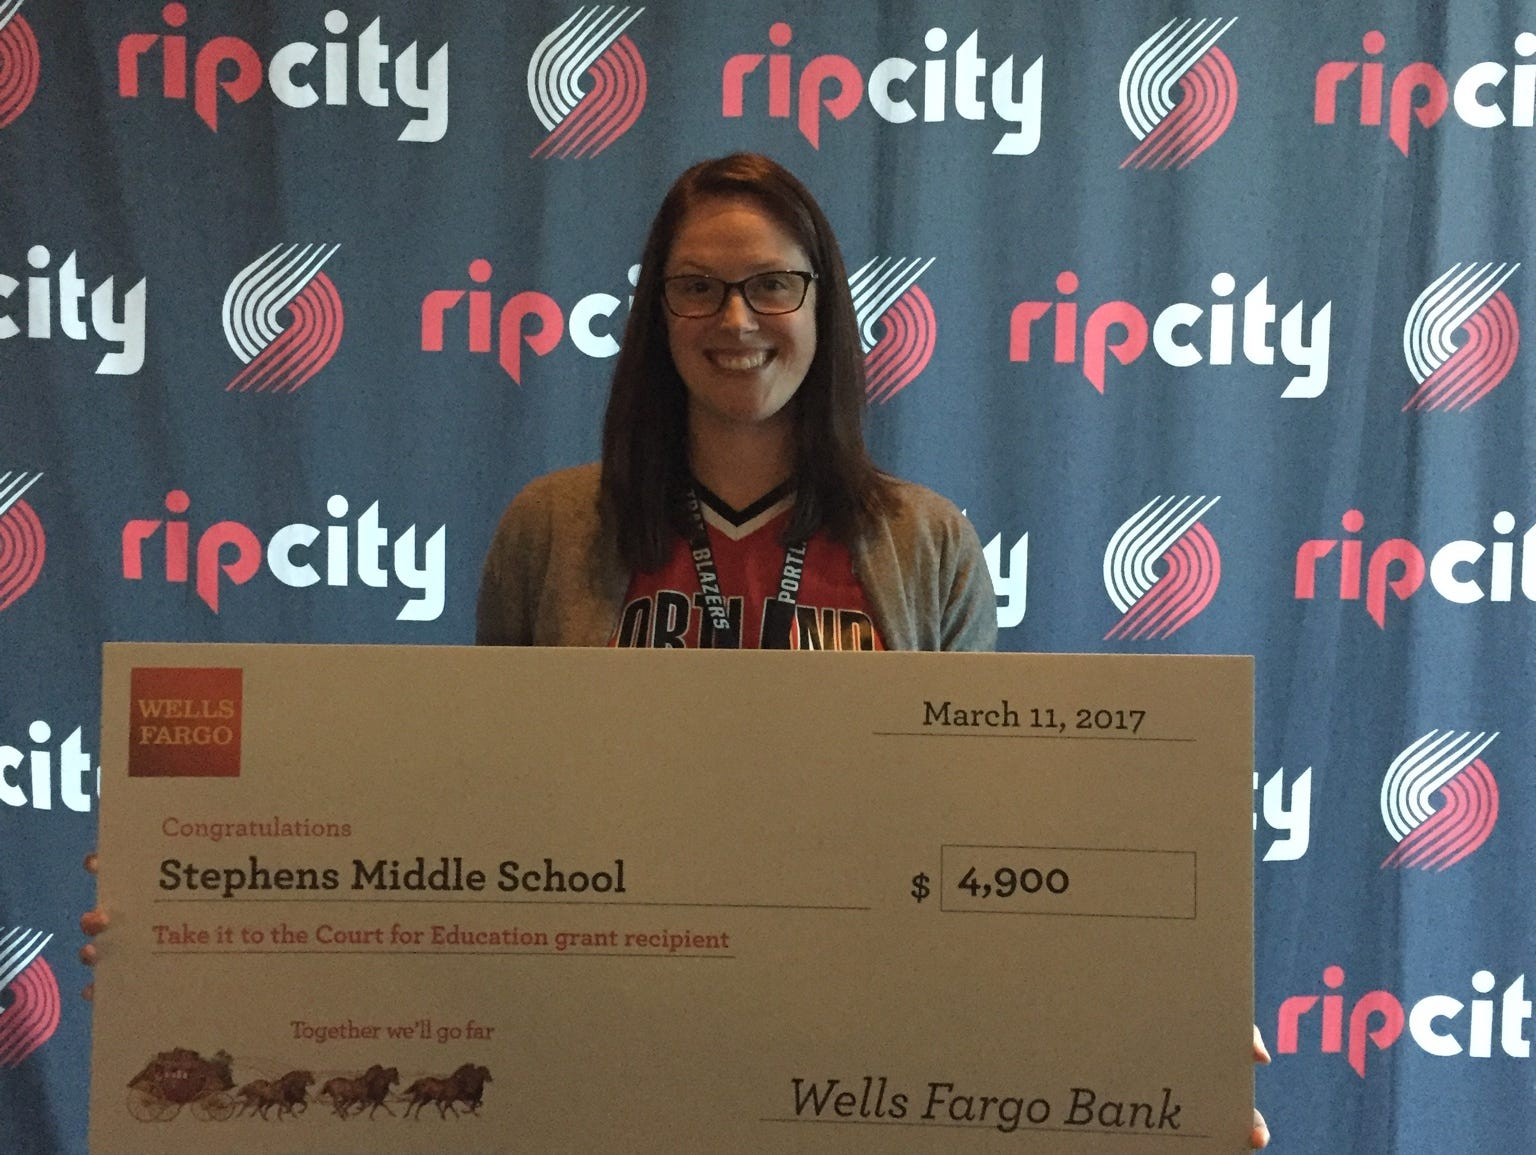 Aimee Leaton, volleyball coach and language arts teacher at Stephens Middle School, received a $4,900 grant from the Trail Blazers Foundation on Saturday prior to the Blazers game against Washington at Moda Center.